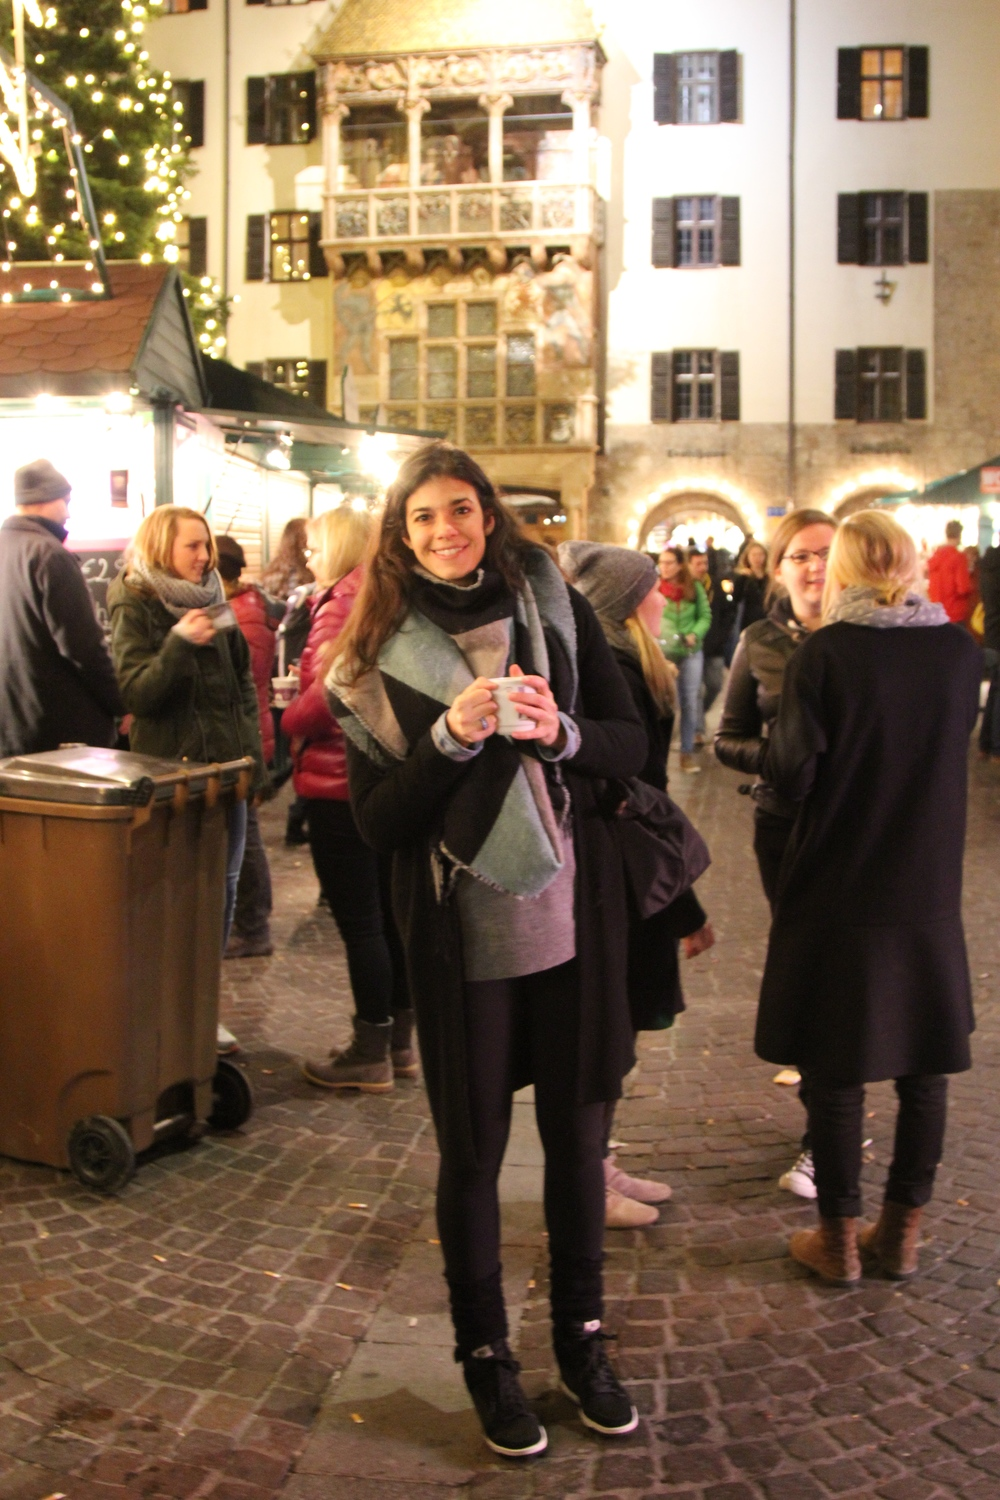 Innsbruck-Christkindlmarkt-LaurenSchwaiger-Travel-Blog.jpgs